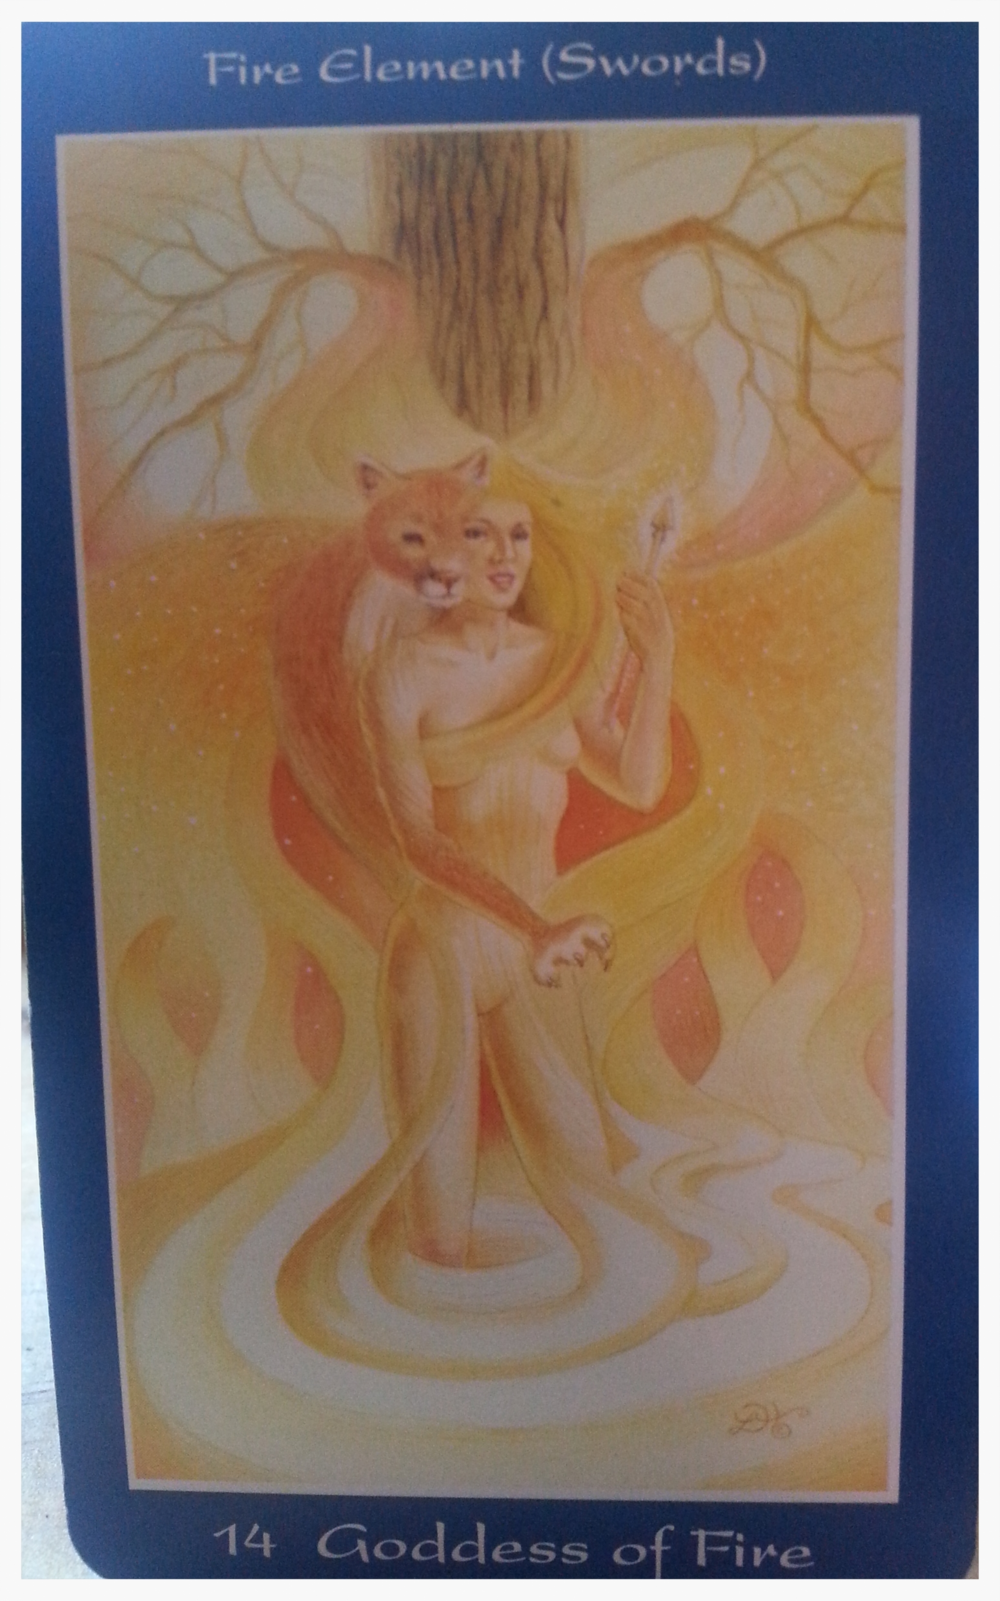 THEME OF THE WEEK AUG 8TH -14TH: THE LION'S GATE- 14-GODDESS OF FIRE: BRIDGET-THE FLAME CREATIVE SPARK, RENEWAL, INSIGHT, EMPOWERMENT